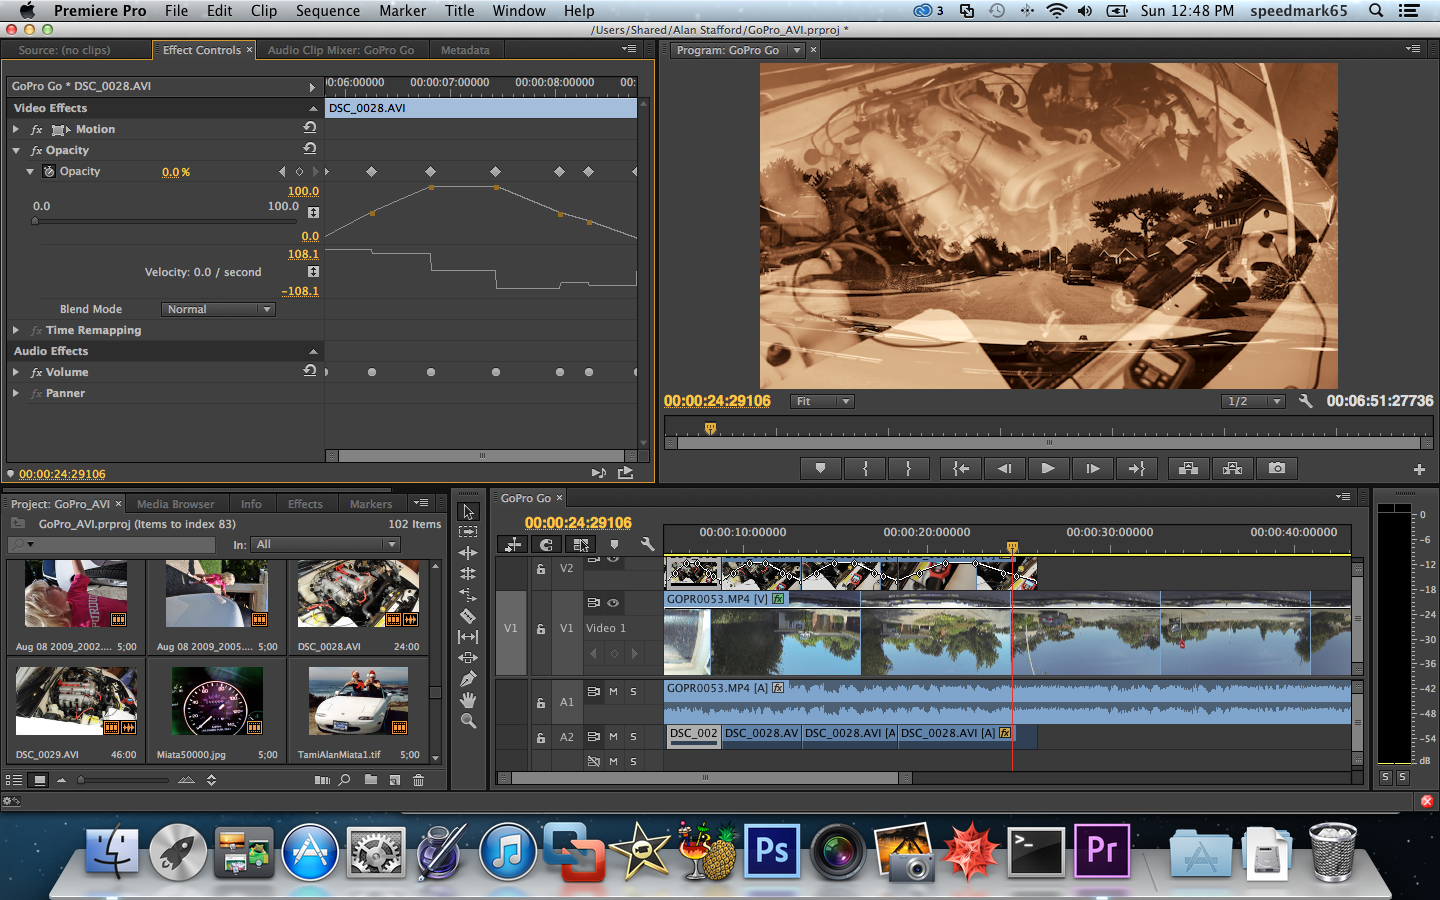 adobe premiere pro cc 2014 torrent